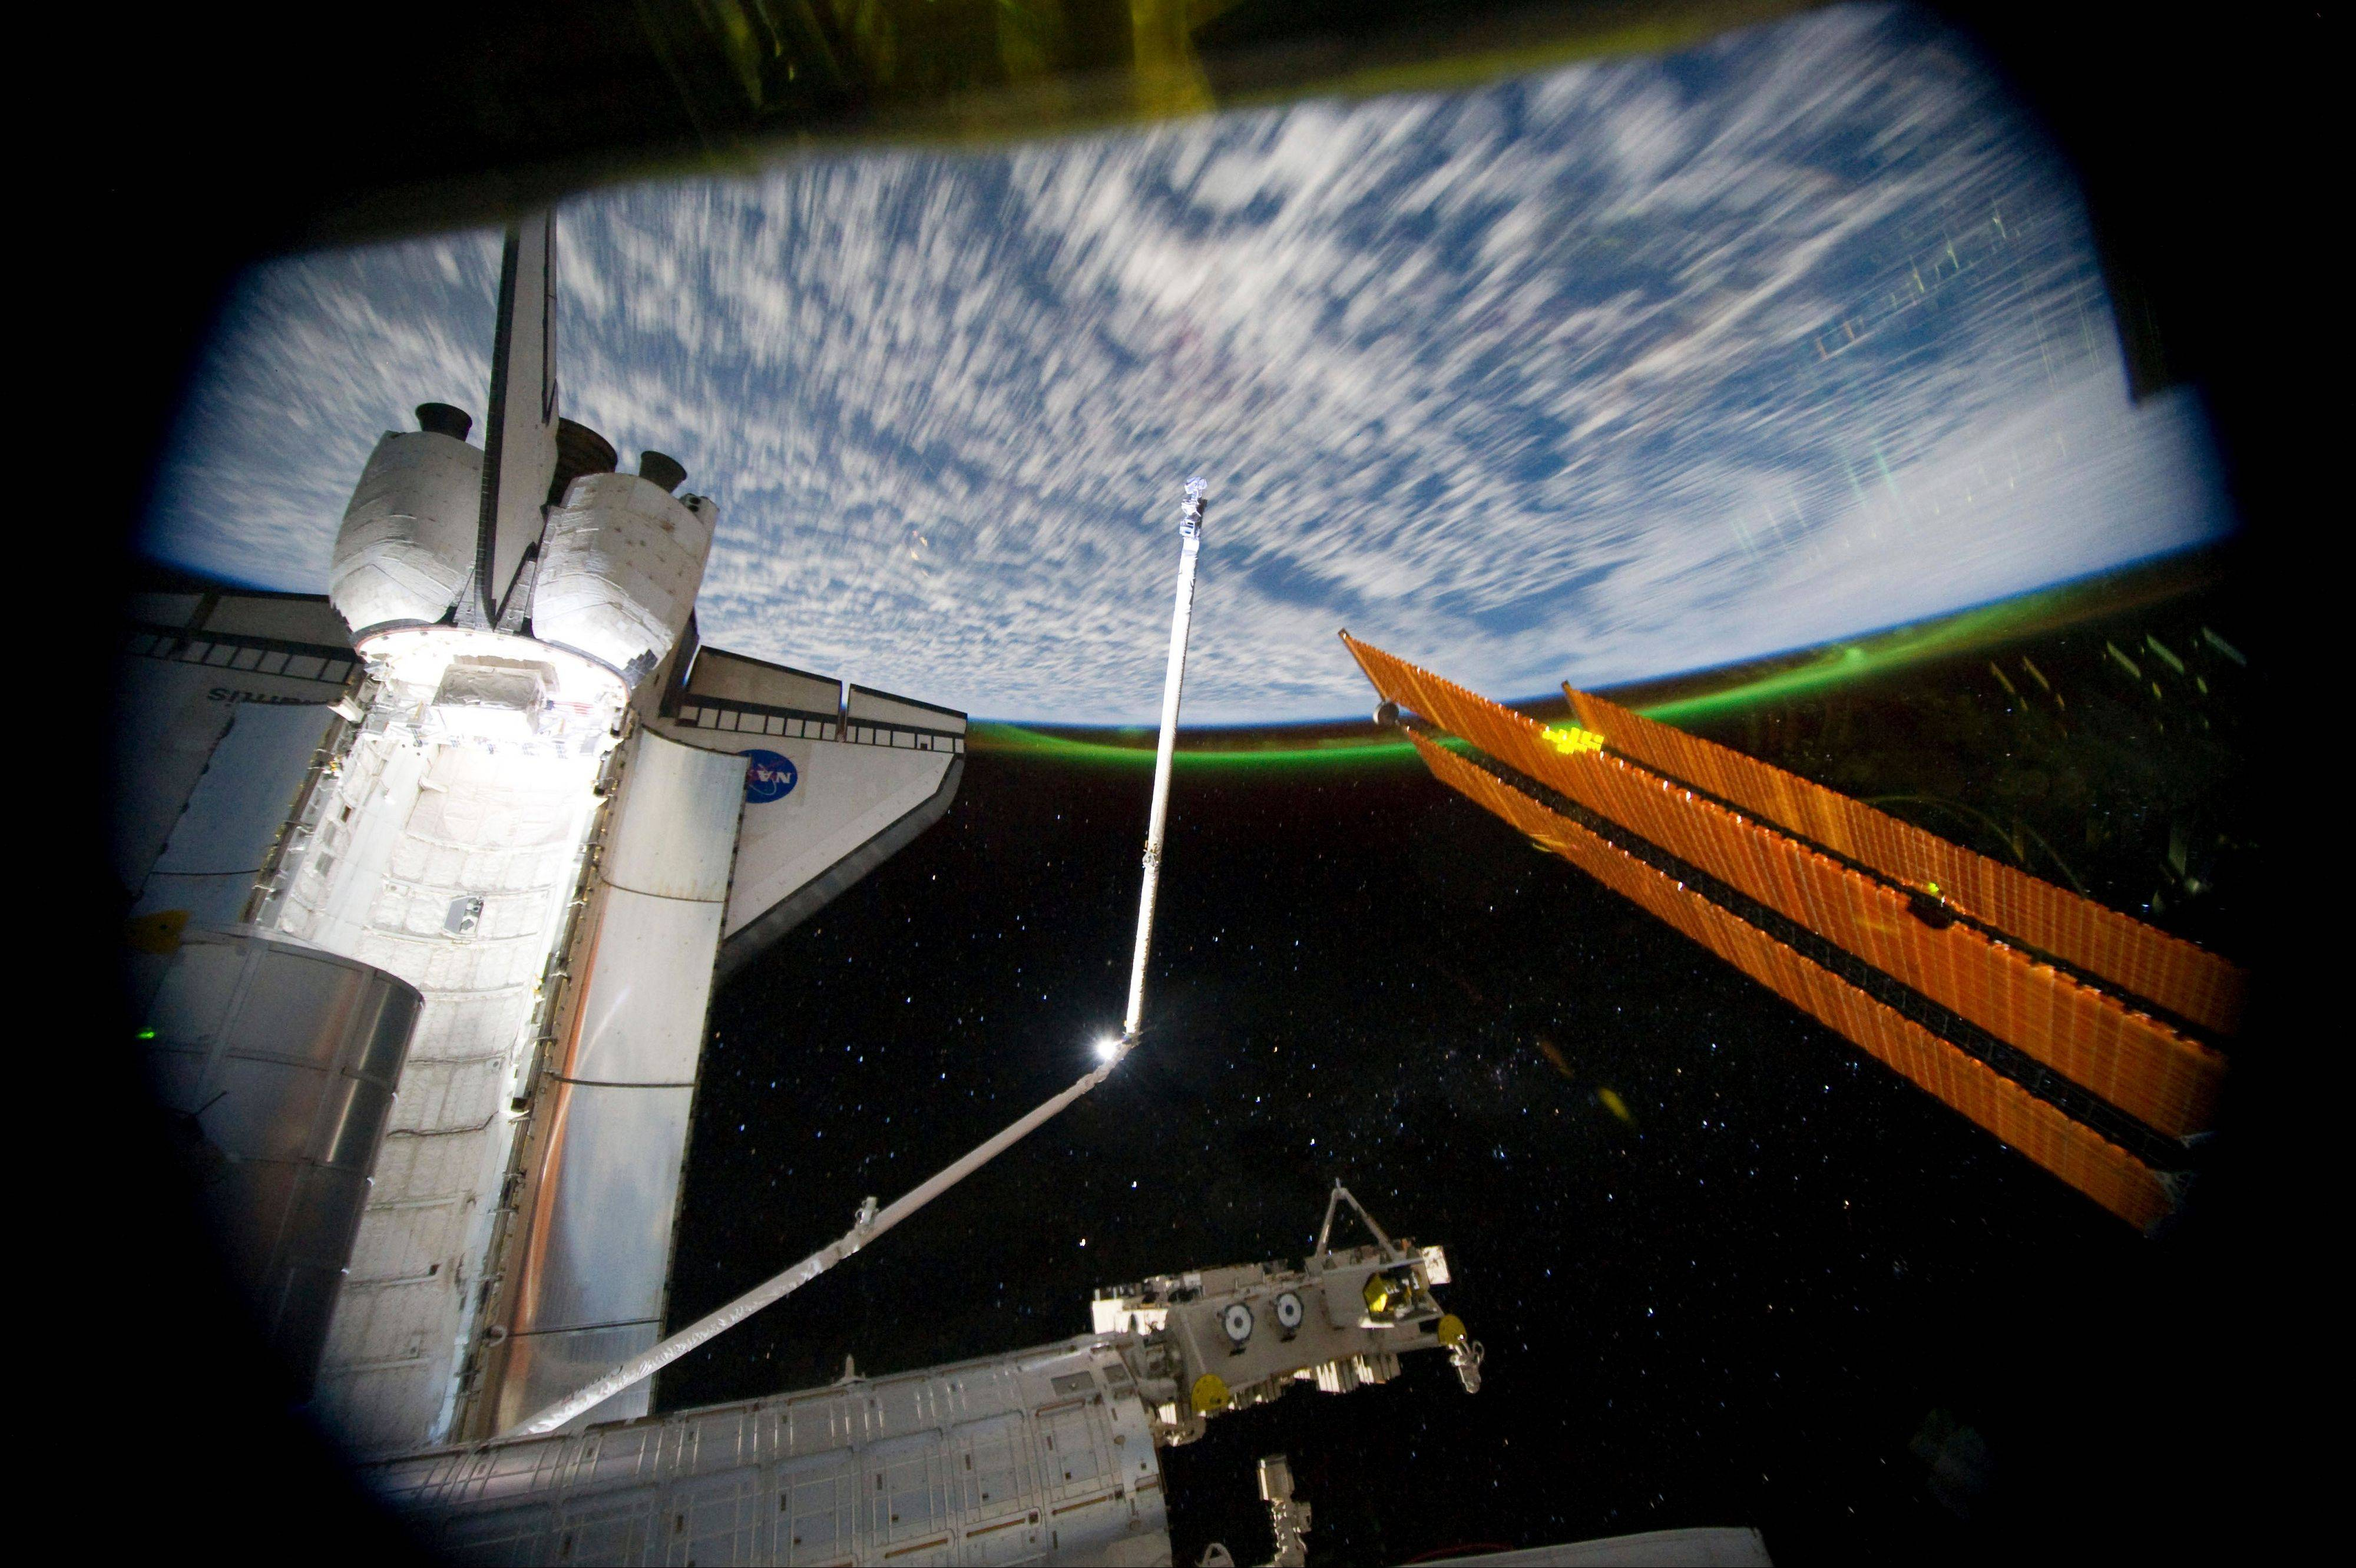 A view from the International Space Station, looking past the docked space shuttle Atlantis' cargo bay, and part of the station including a solar array panel. Aurora Australis, or the Southern Lights, can be seen on Earth's horizon.